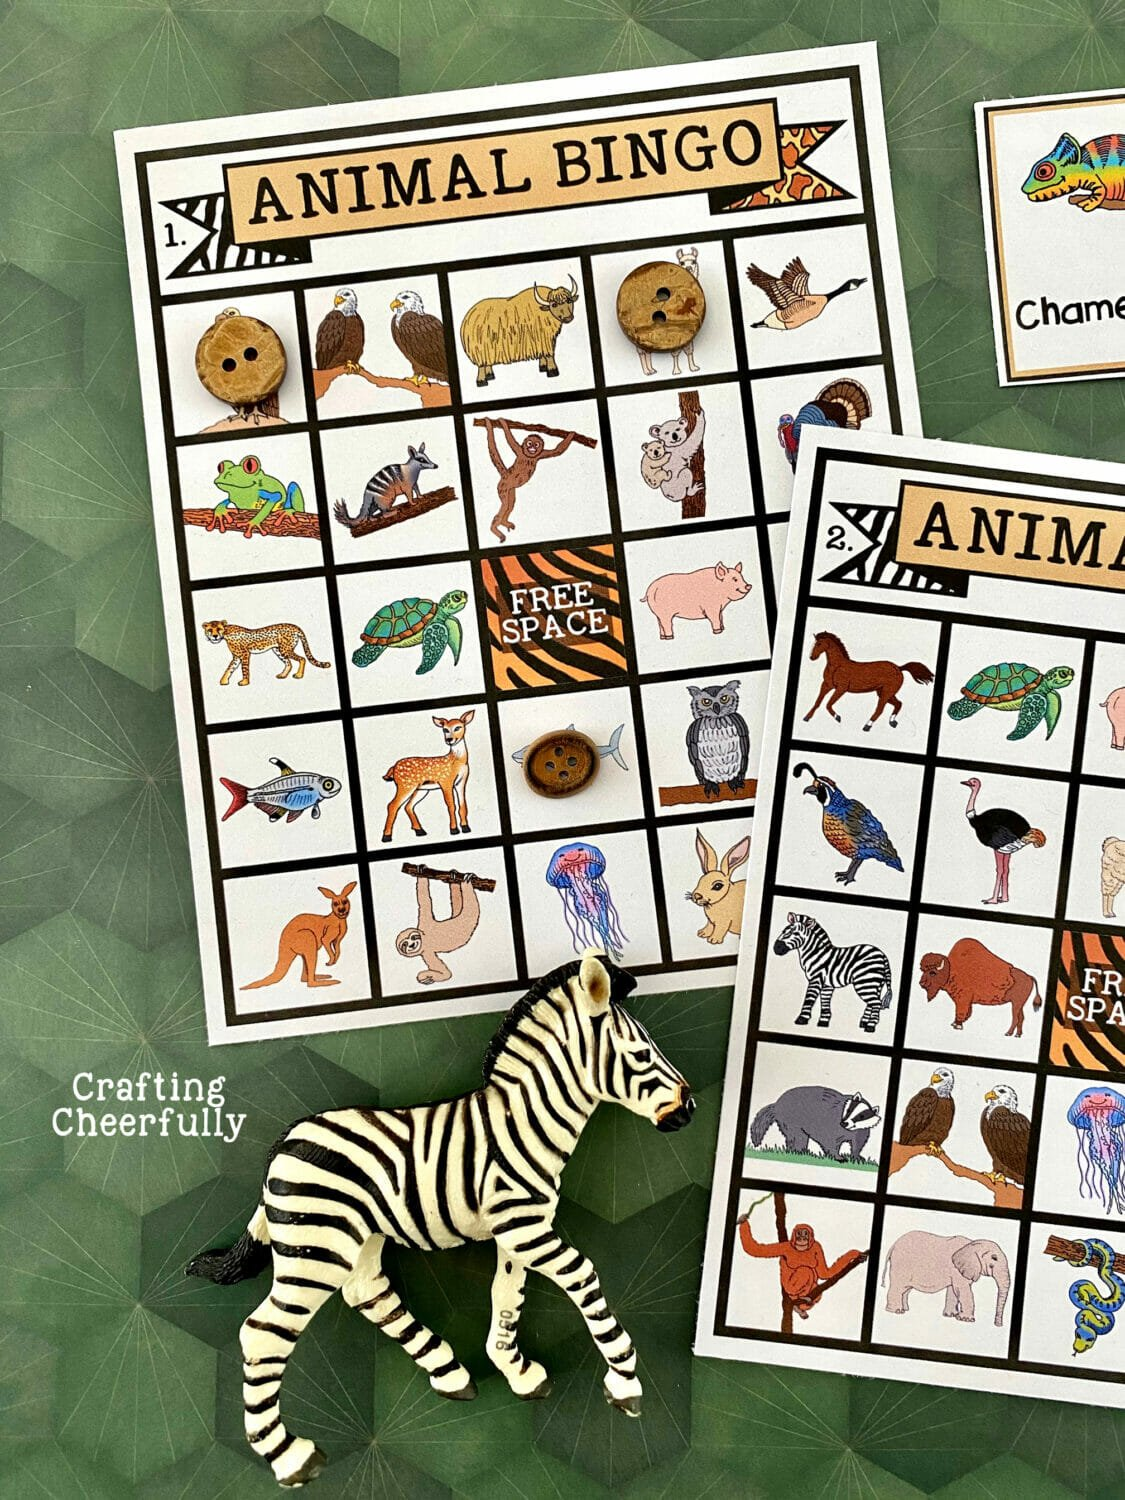 Animal BINGO boards on a green surface with calling cards and a zebra around them.